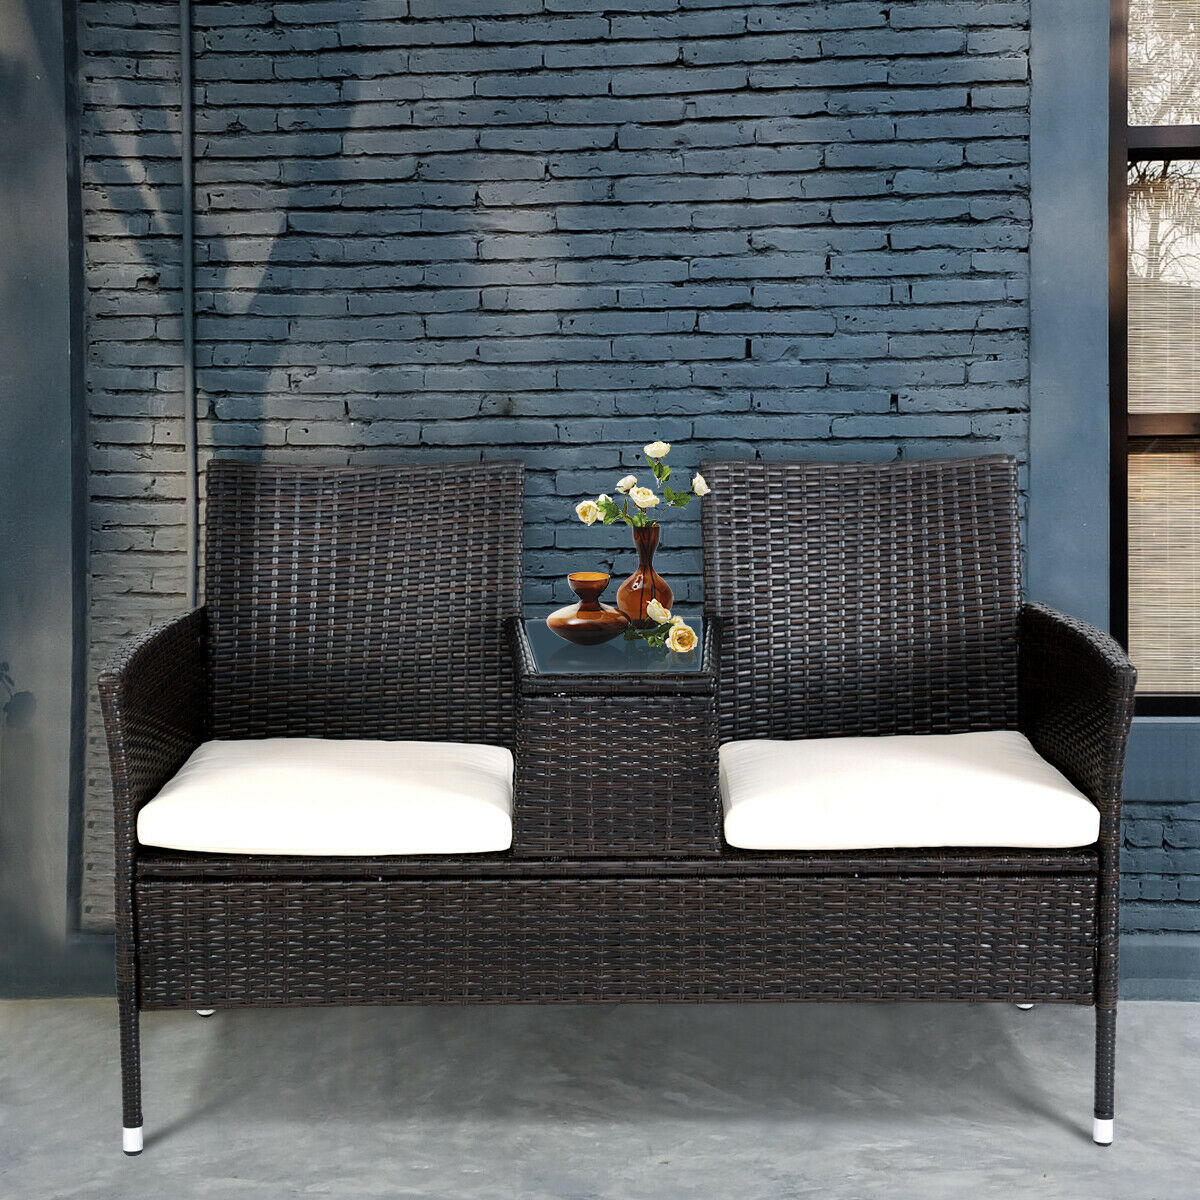 Costway Patio Rattan Chat Set Seat Sofa Loveseat Table Chairs w/ Cushion - image 3 de 9